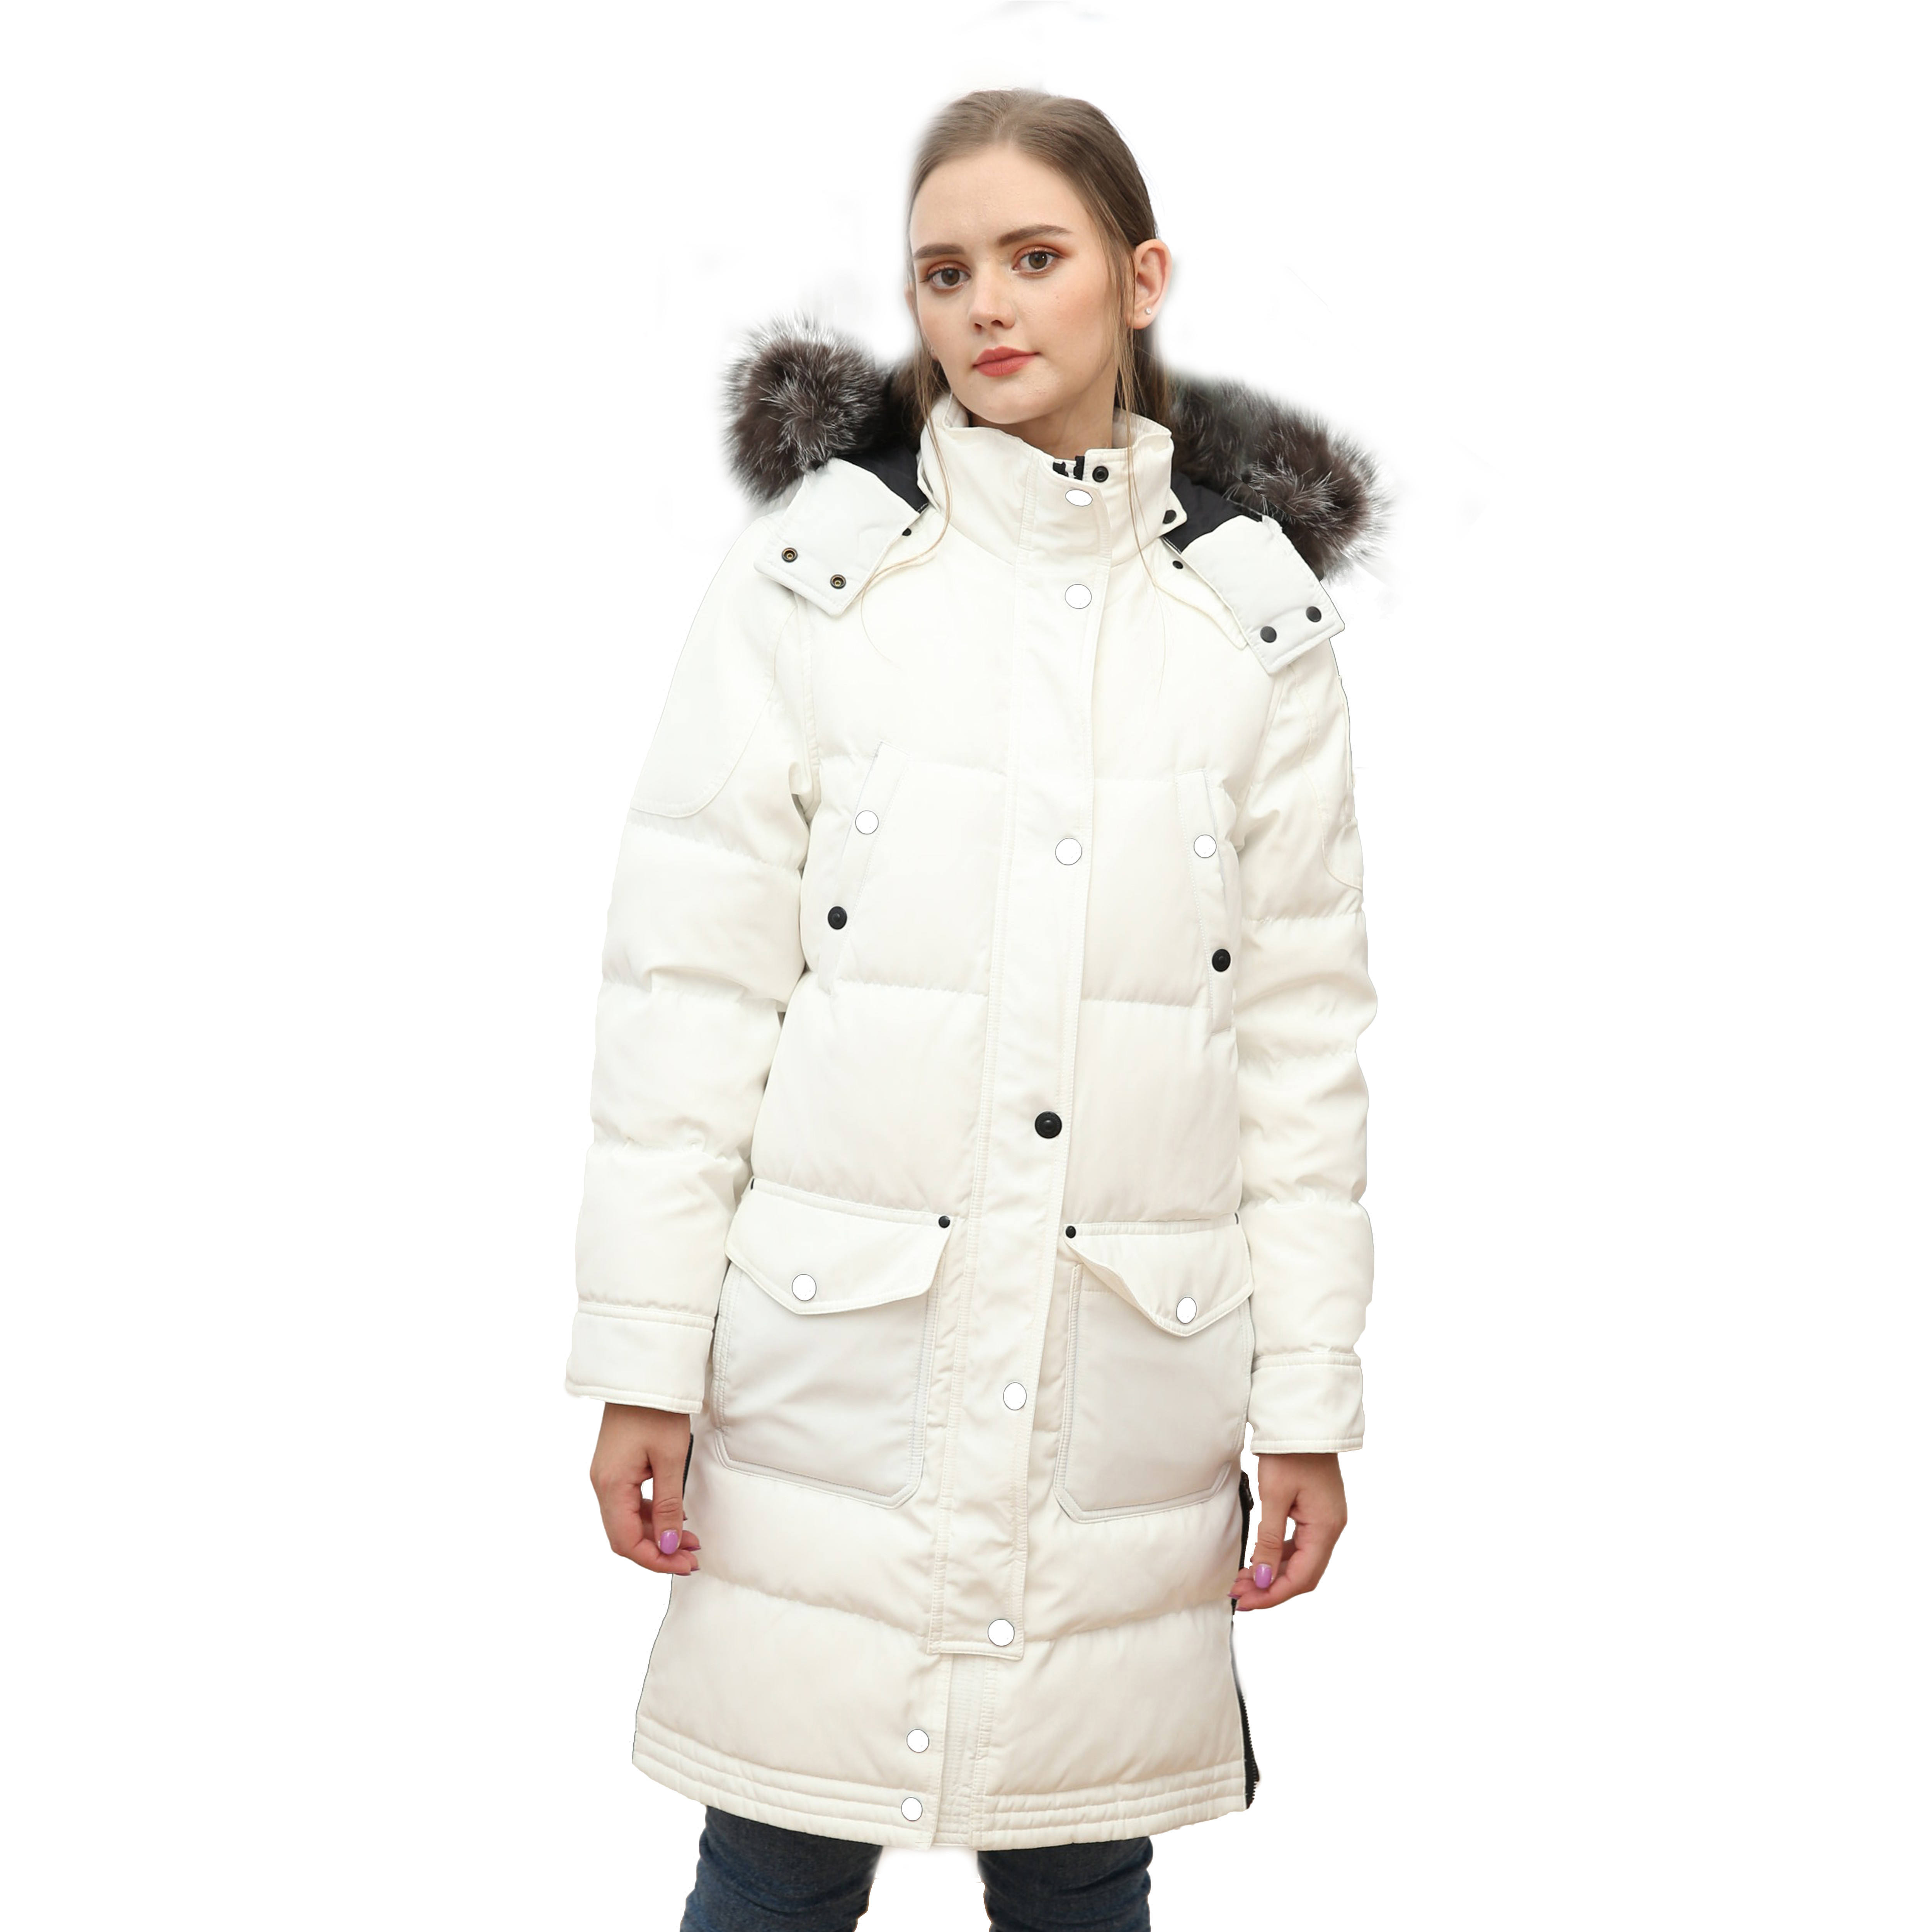 New Arrival White Down Coat Popular Thick Outwear Winter Girls Long Puffer Jacket With Brown With White Tips Fox Fur Collar